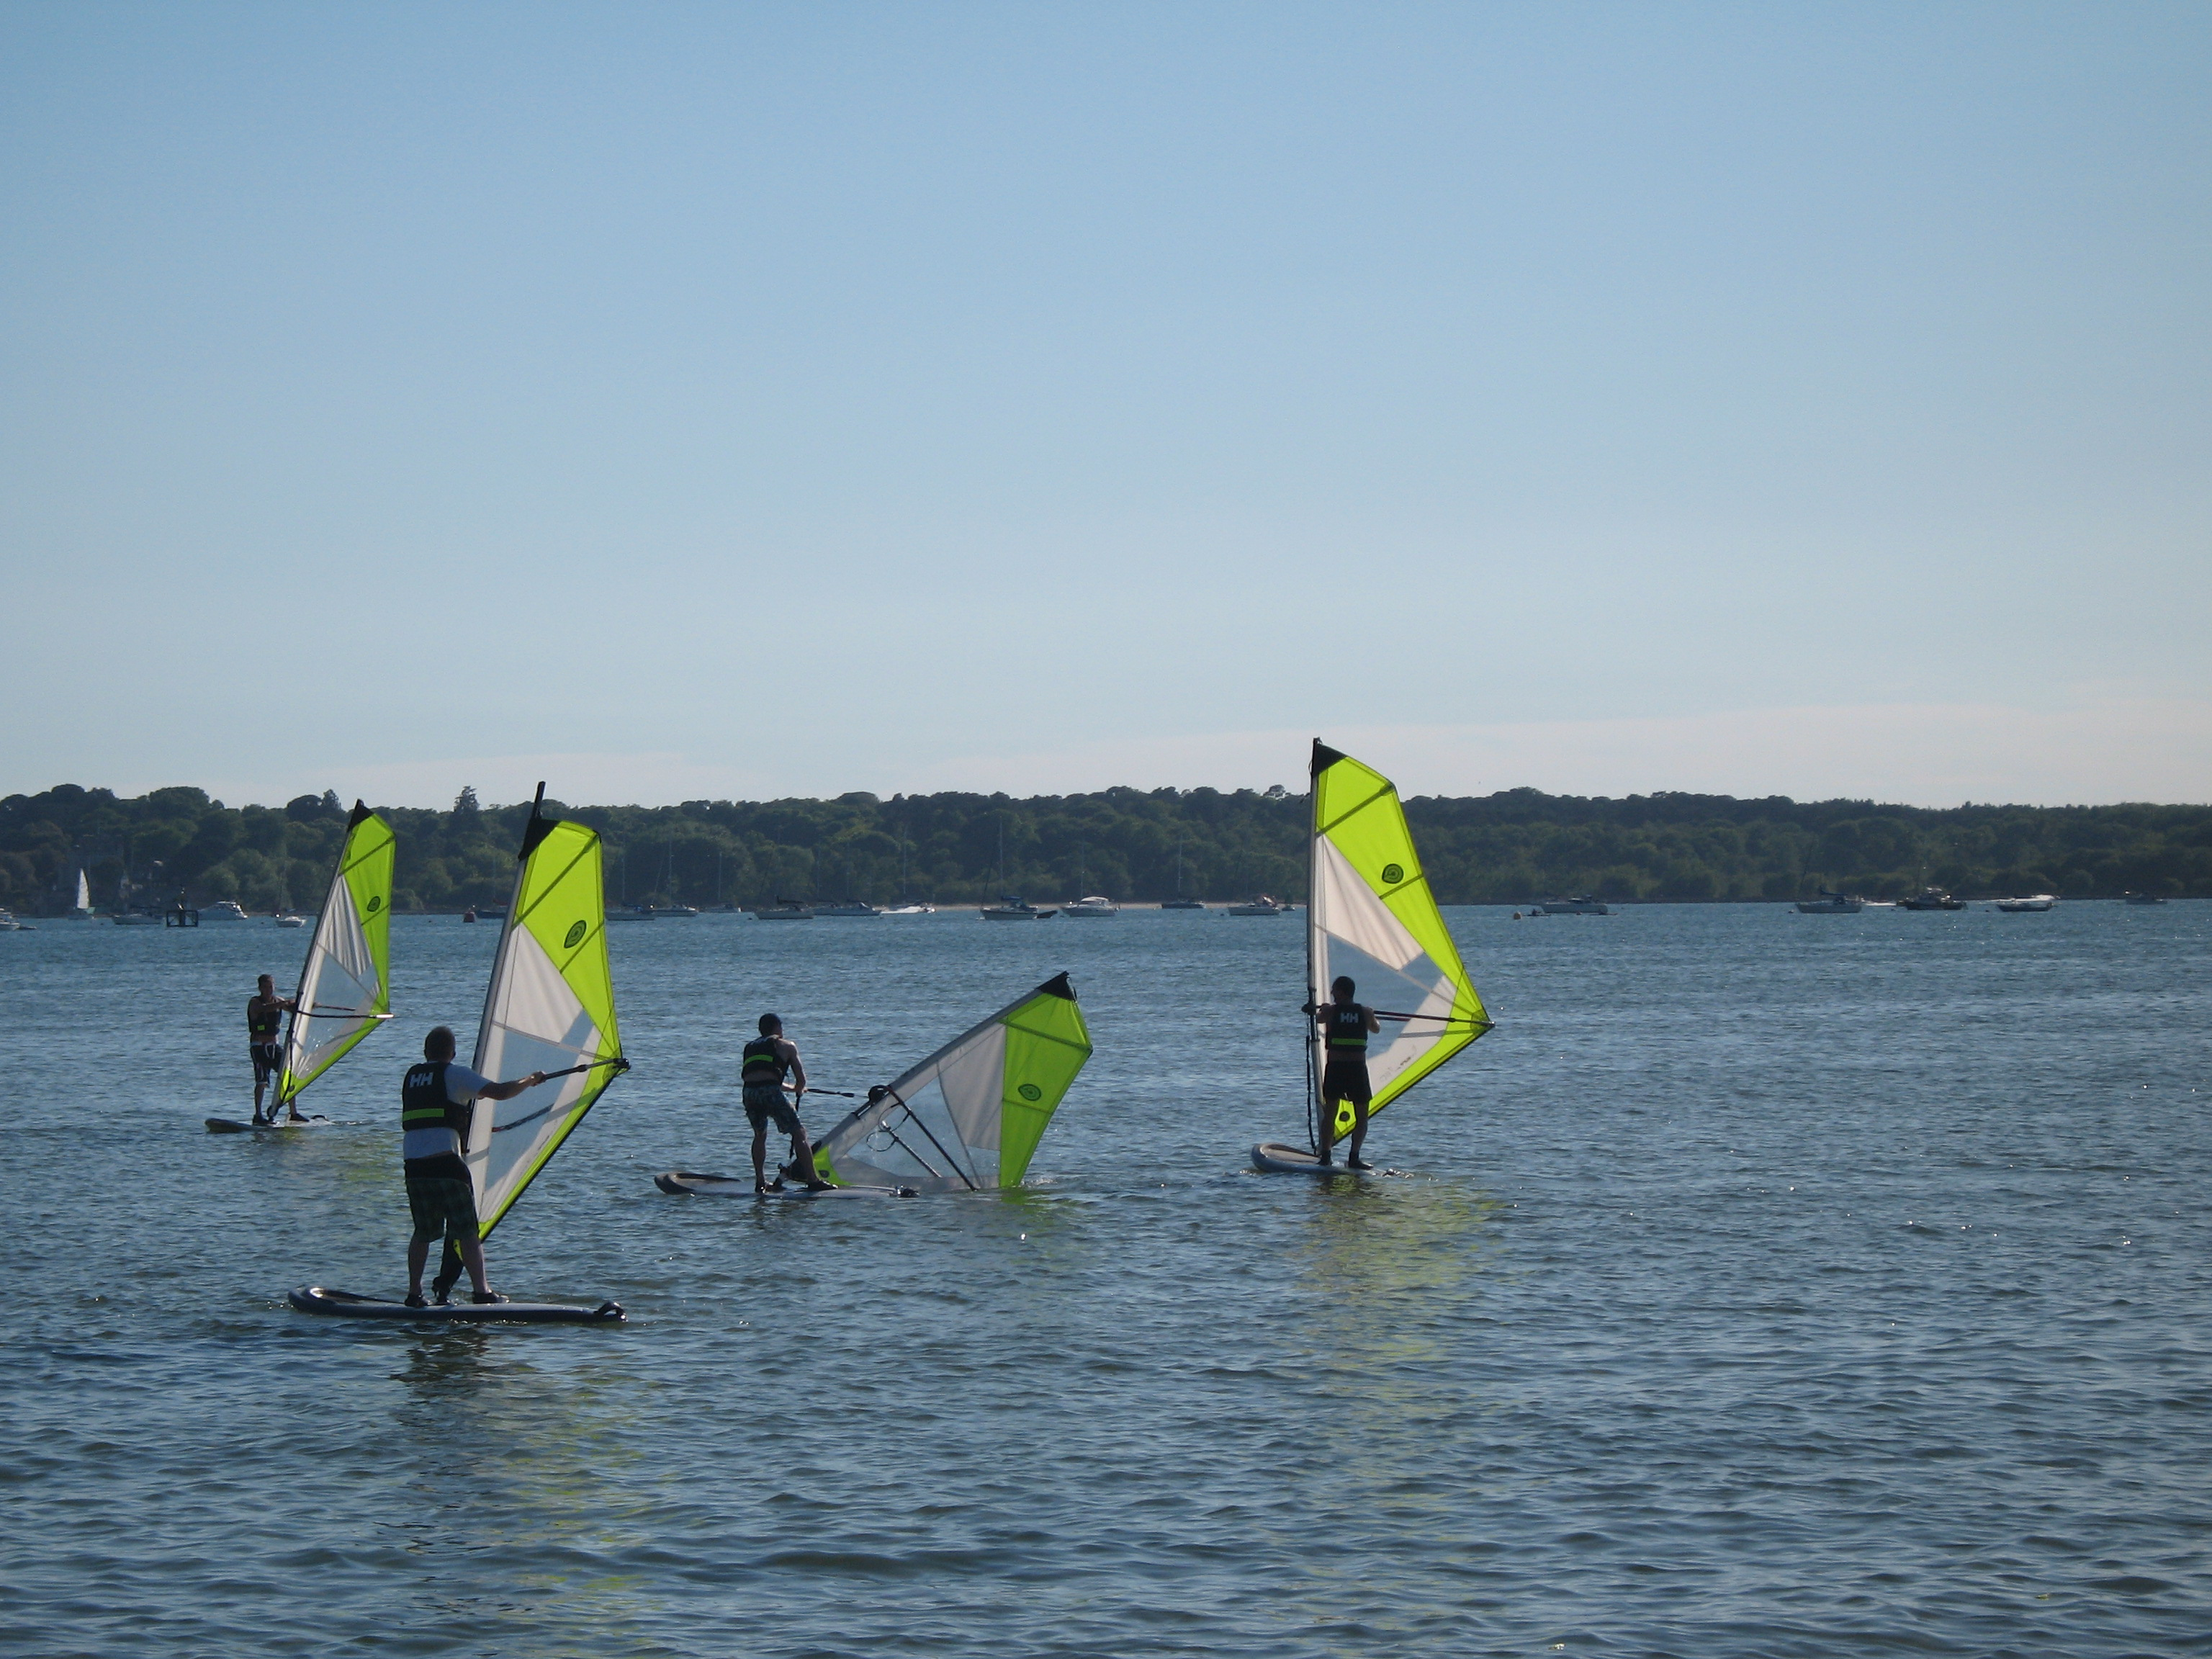 Evening Windsurf Club at Poole Windsurfing School